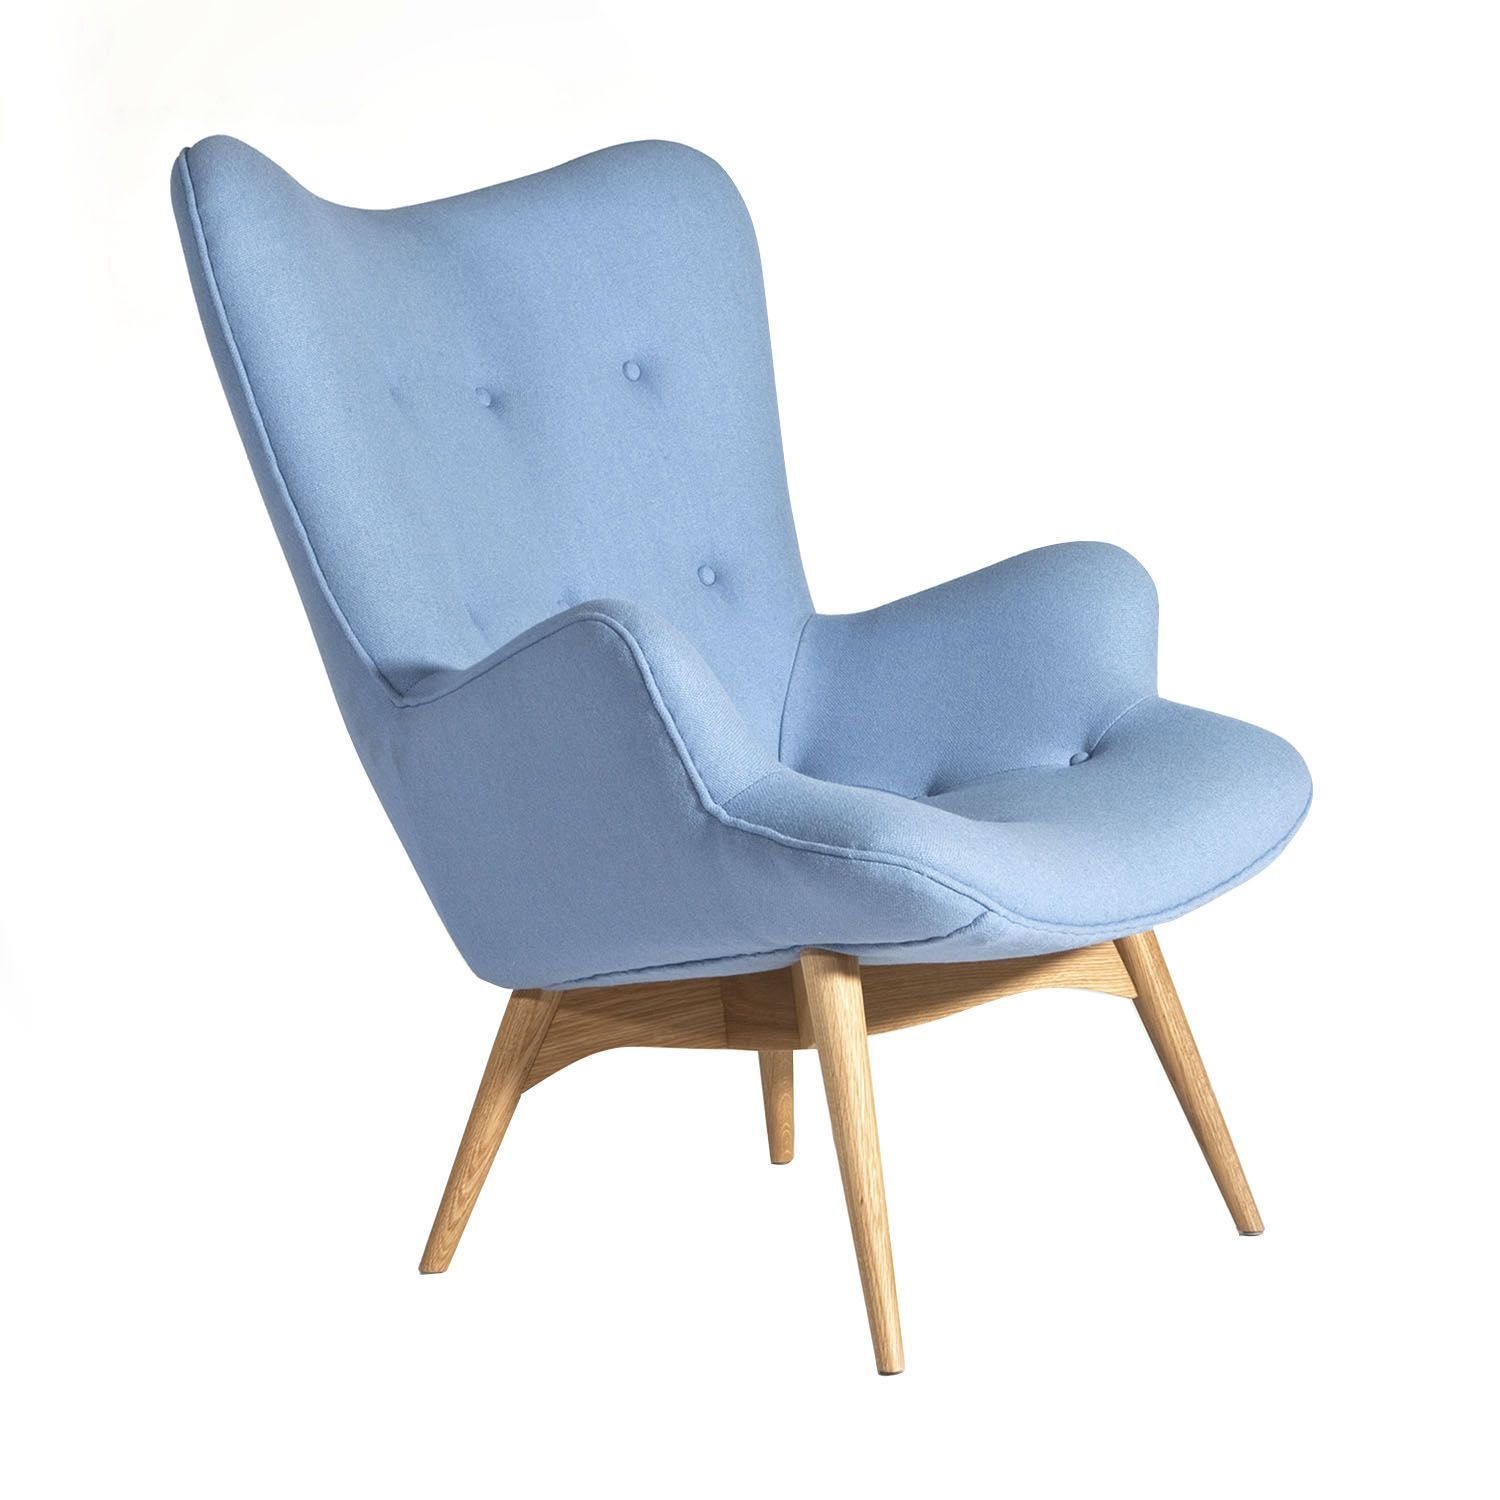 Sillones Butacas Diseño Butacas Contour Google Search Chairs Pinterest